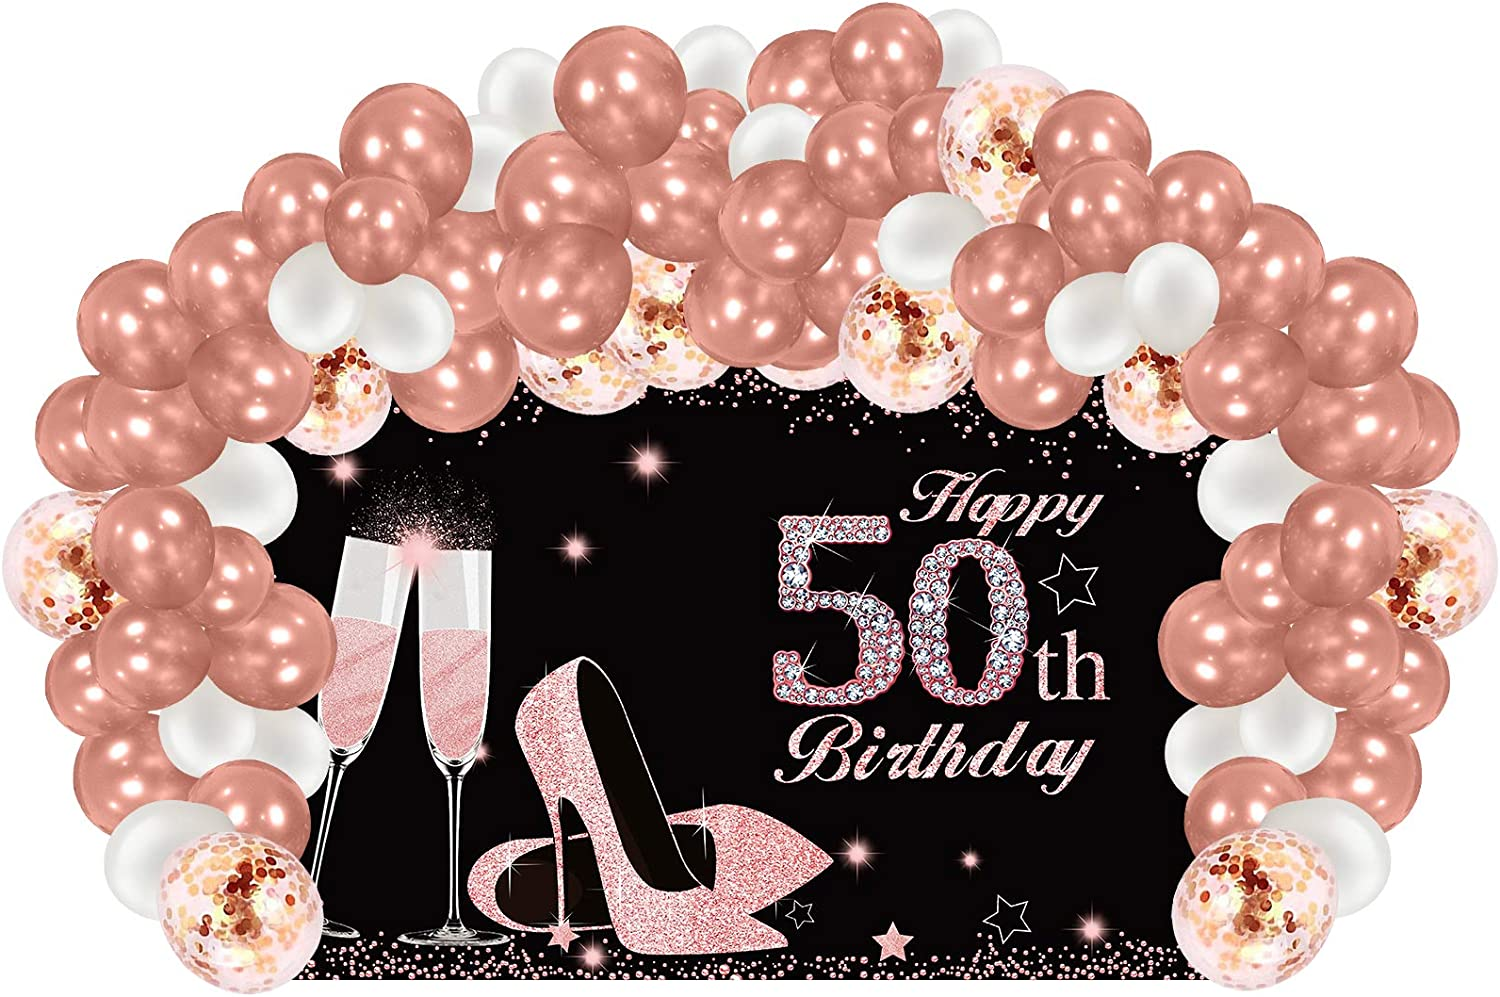 Excelloon 50th Birthday Banner Backdrop Decorations with Balloon Garland Arch, Large Happy 50th Birthday Banner Balloon for Women, Rose Gold 50 Years Old Birthday Party Supplies Décor